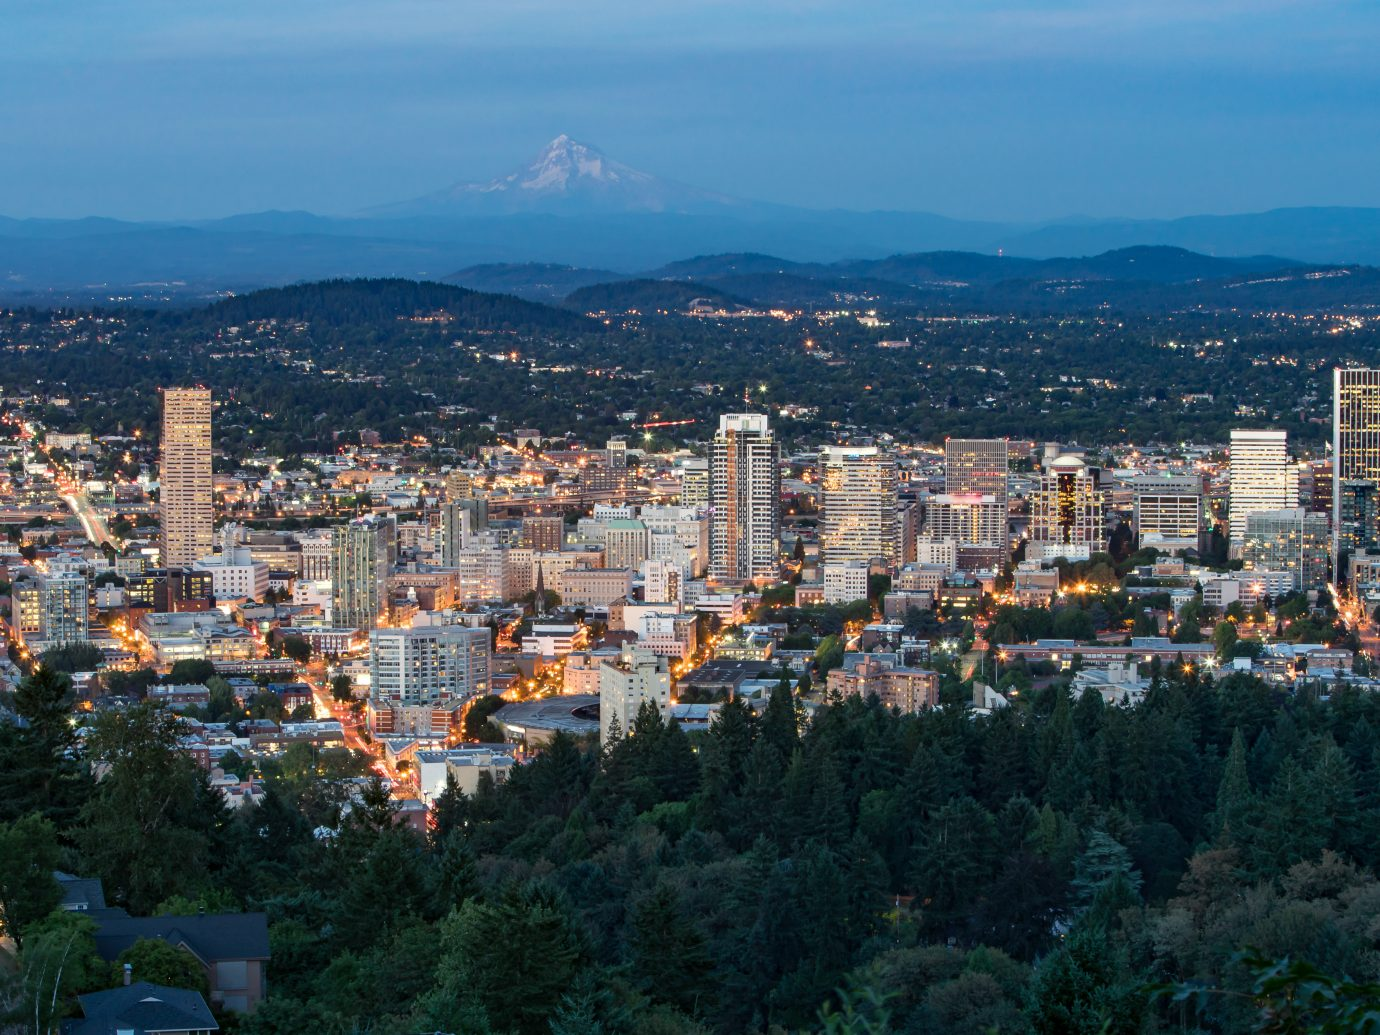 Night City Skyline of Portland, Oregon